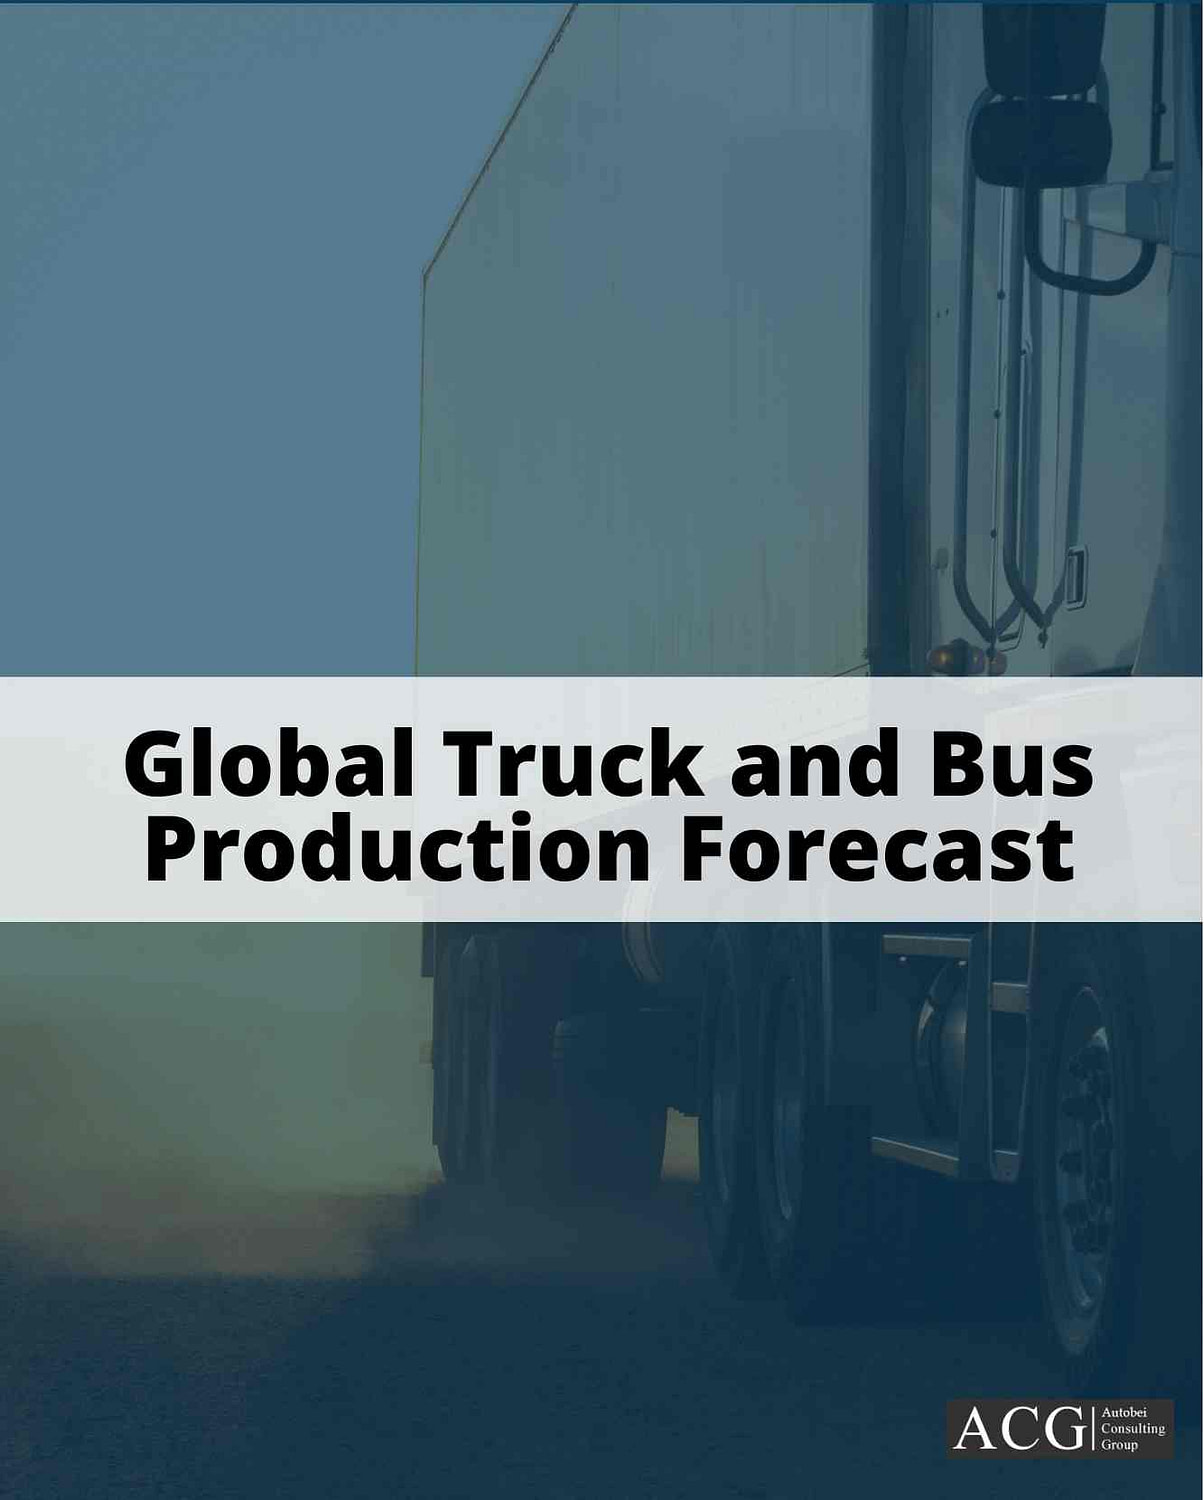 Global Commercial Vehicle Production forecast